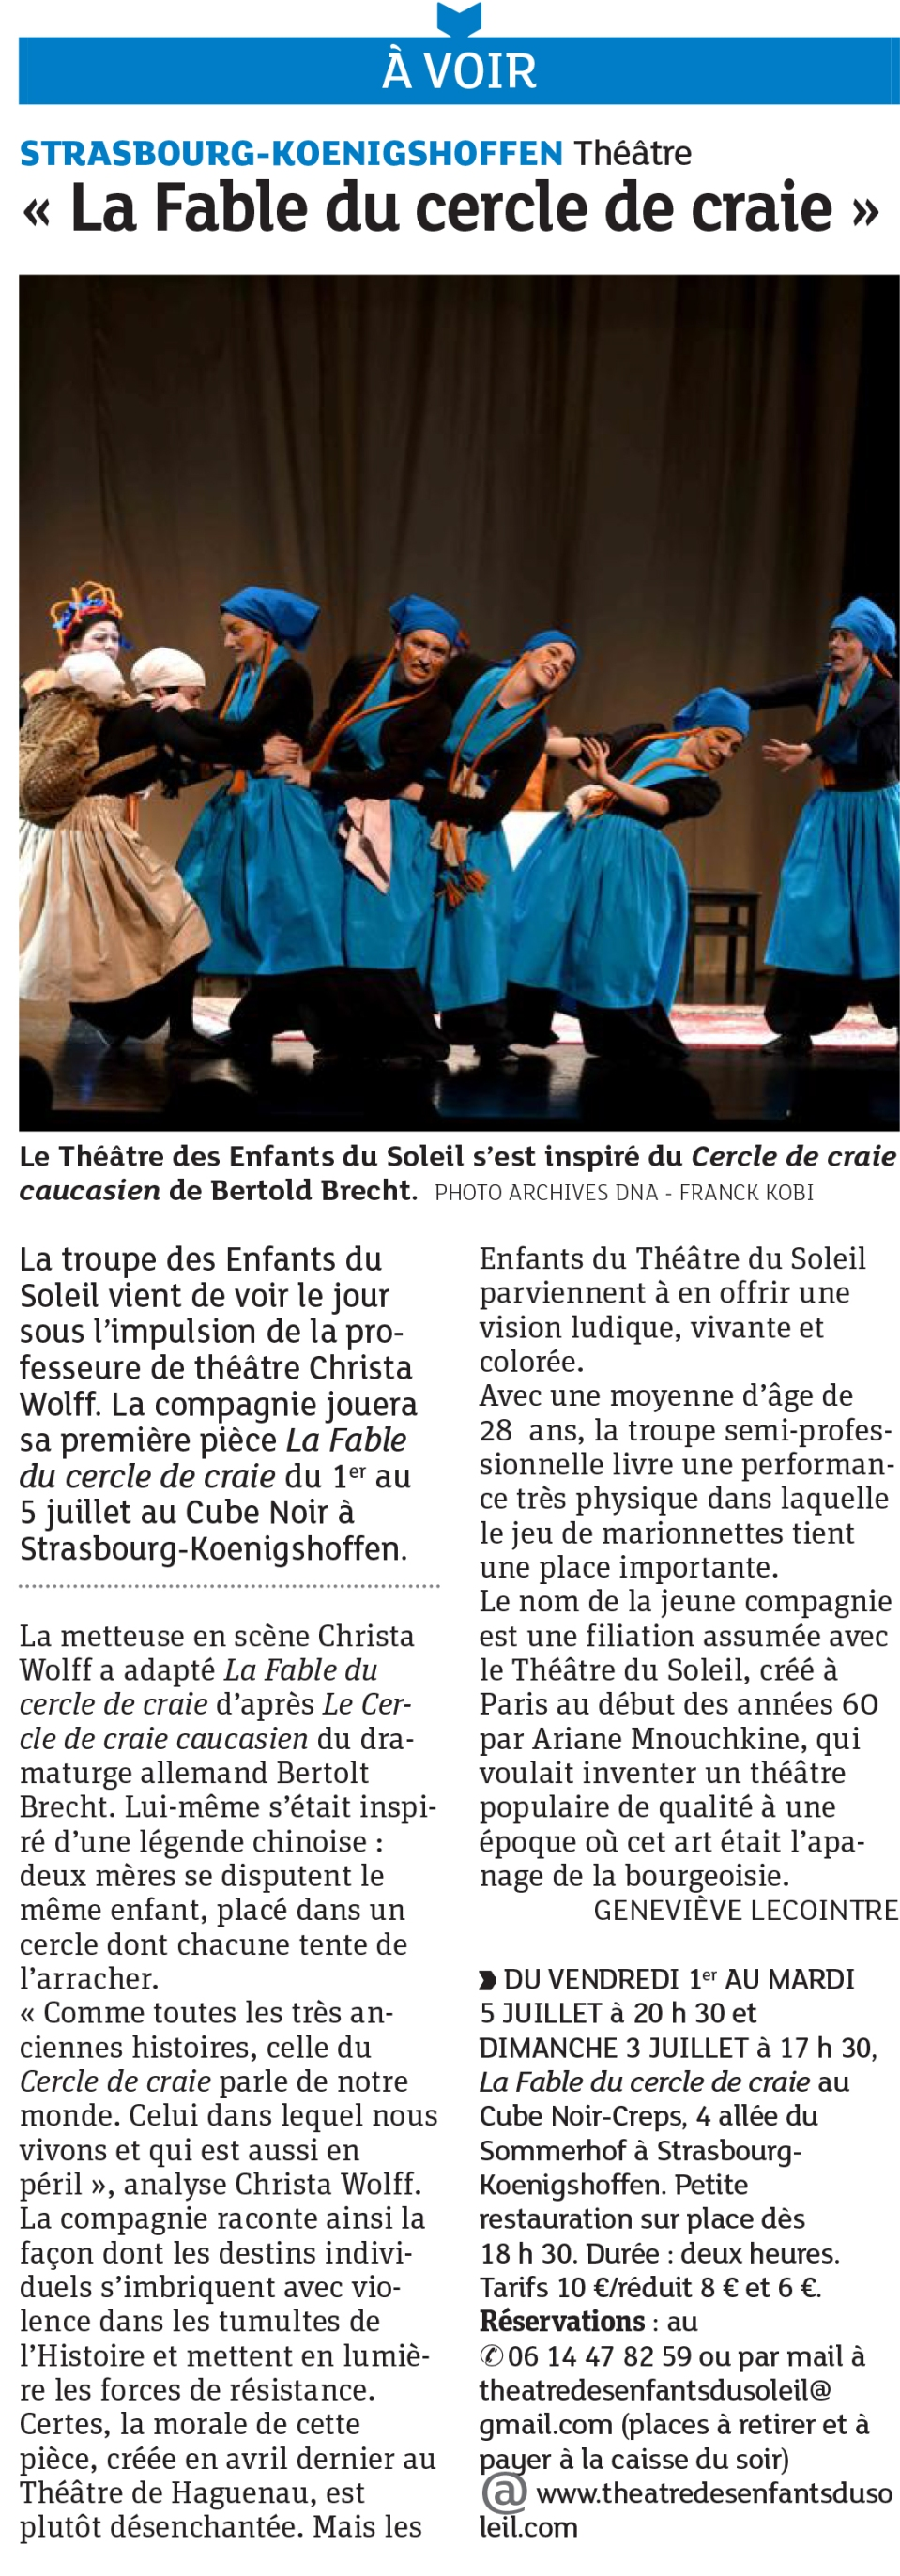 article DNA 29 juin 2016